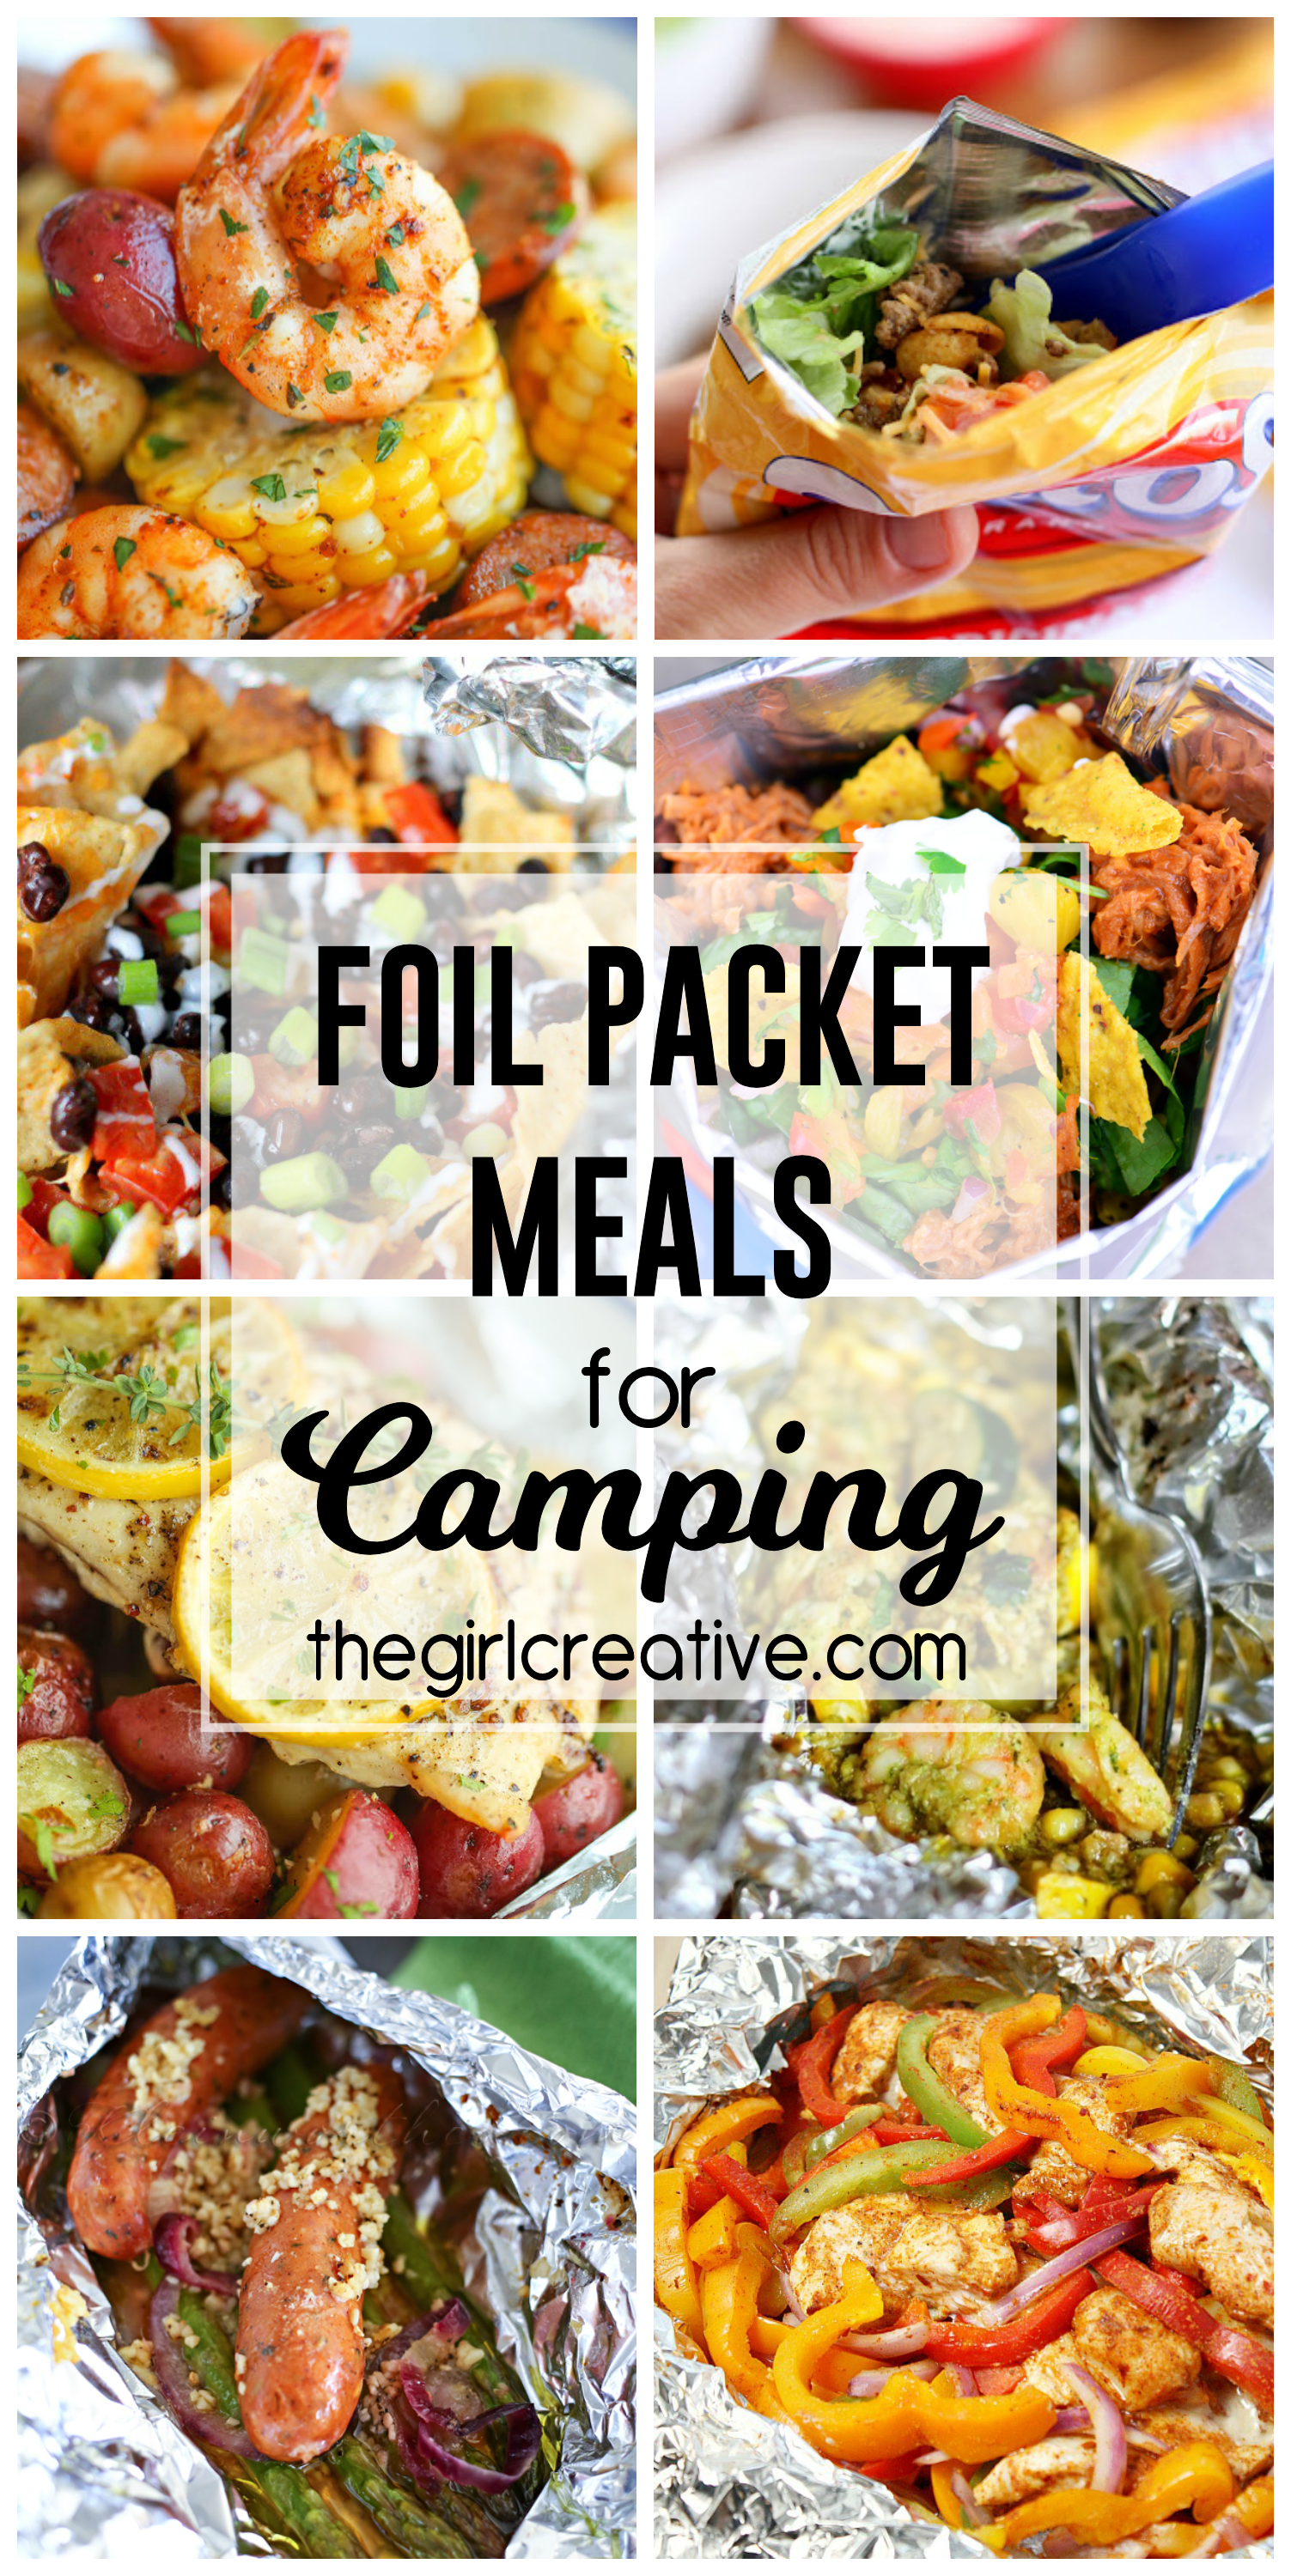 delicious foil packet meals for camping foil packet meals meals and camping. Black Bedroom Furniture Sets. Home Design Ideas